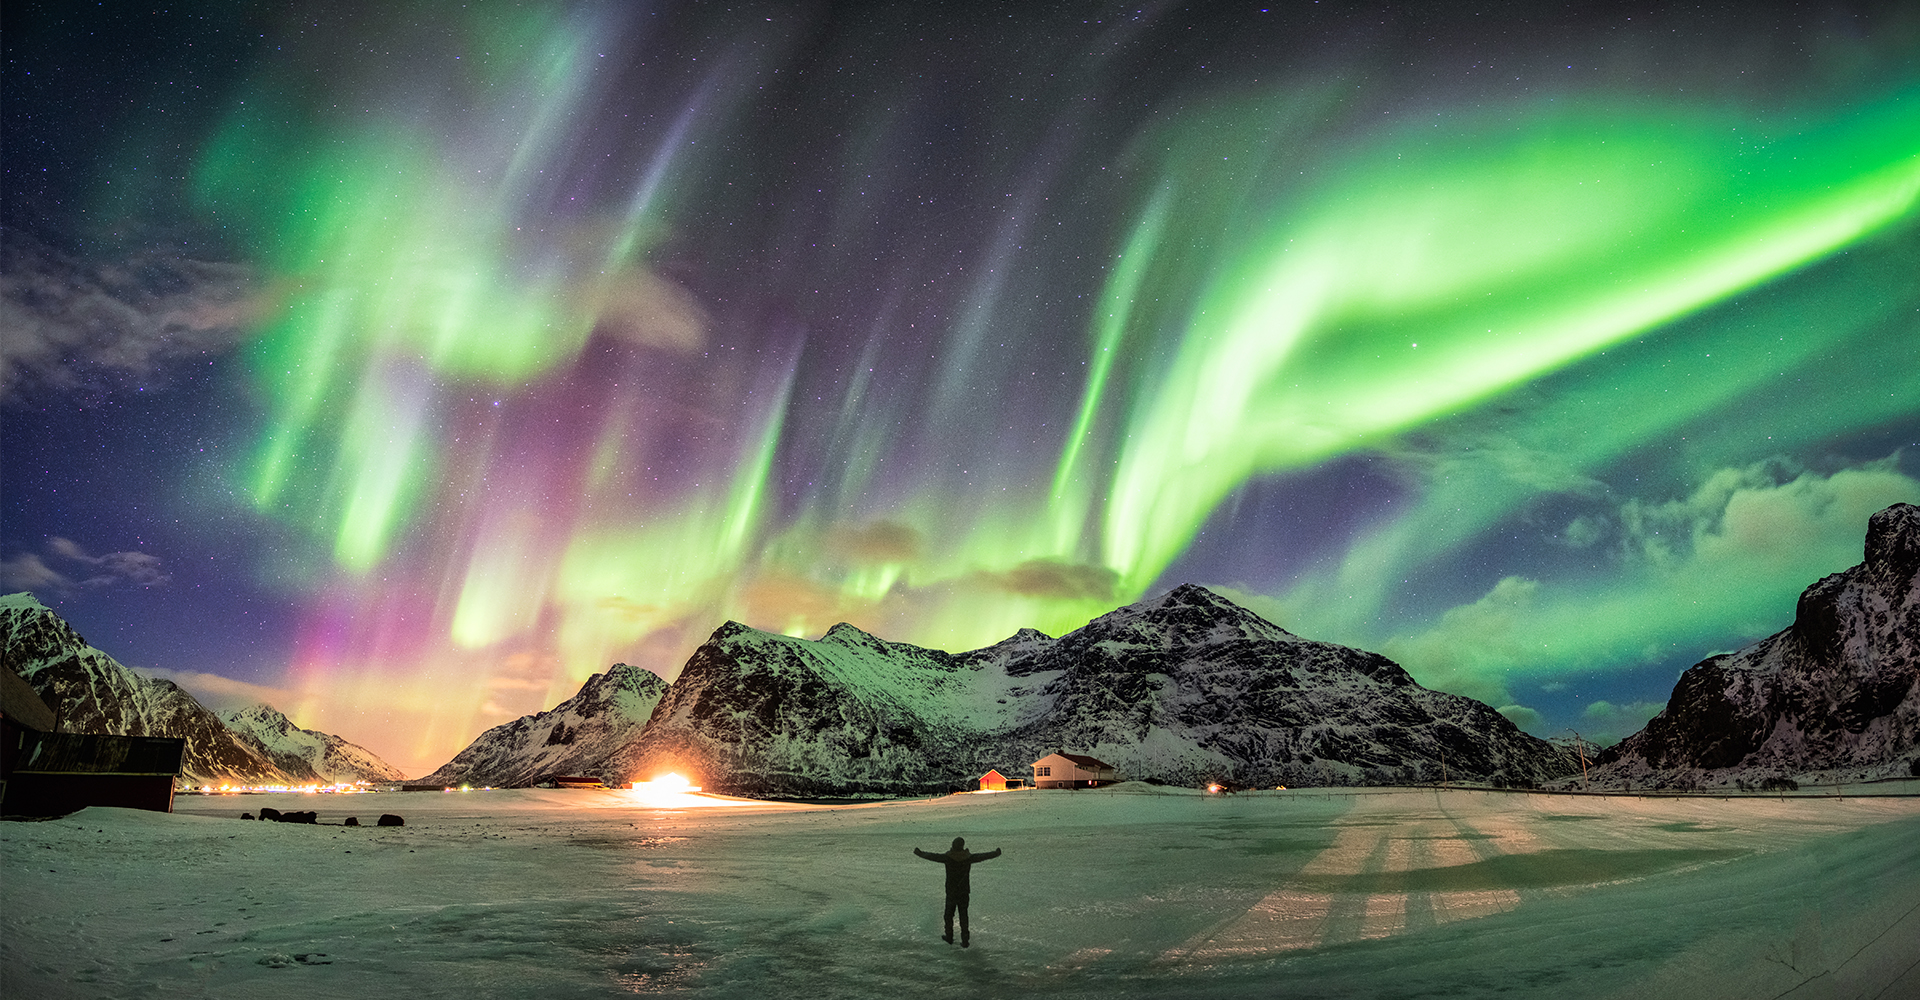 A person standing at night looking up at the Northern Lights